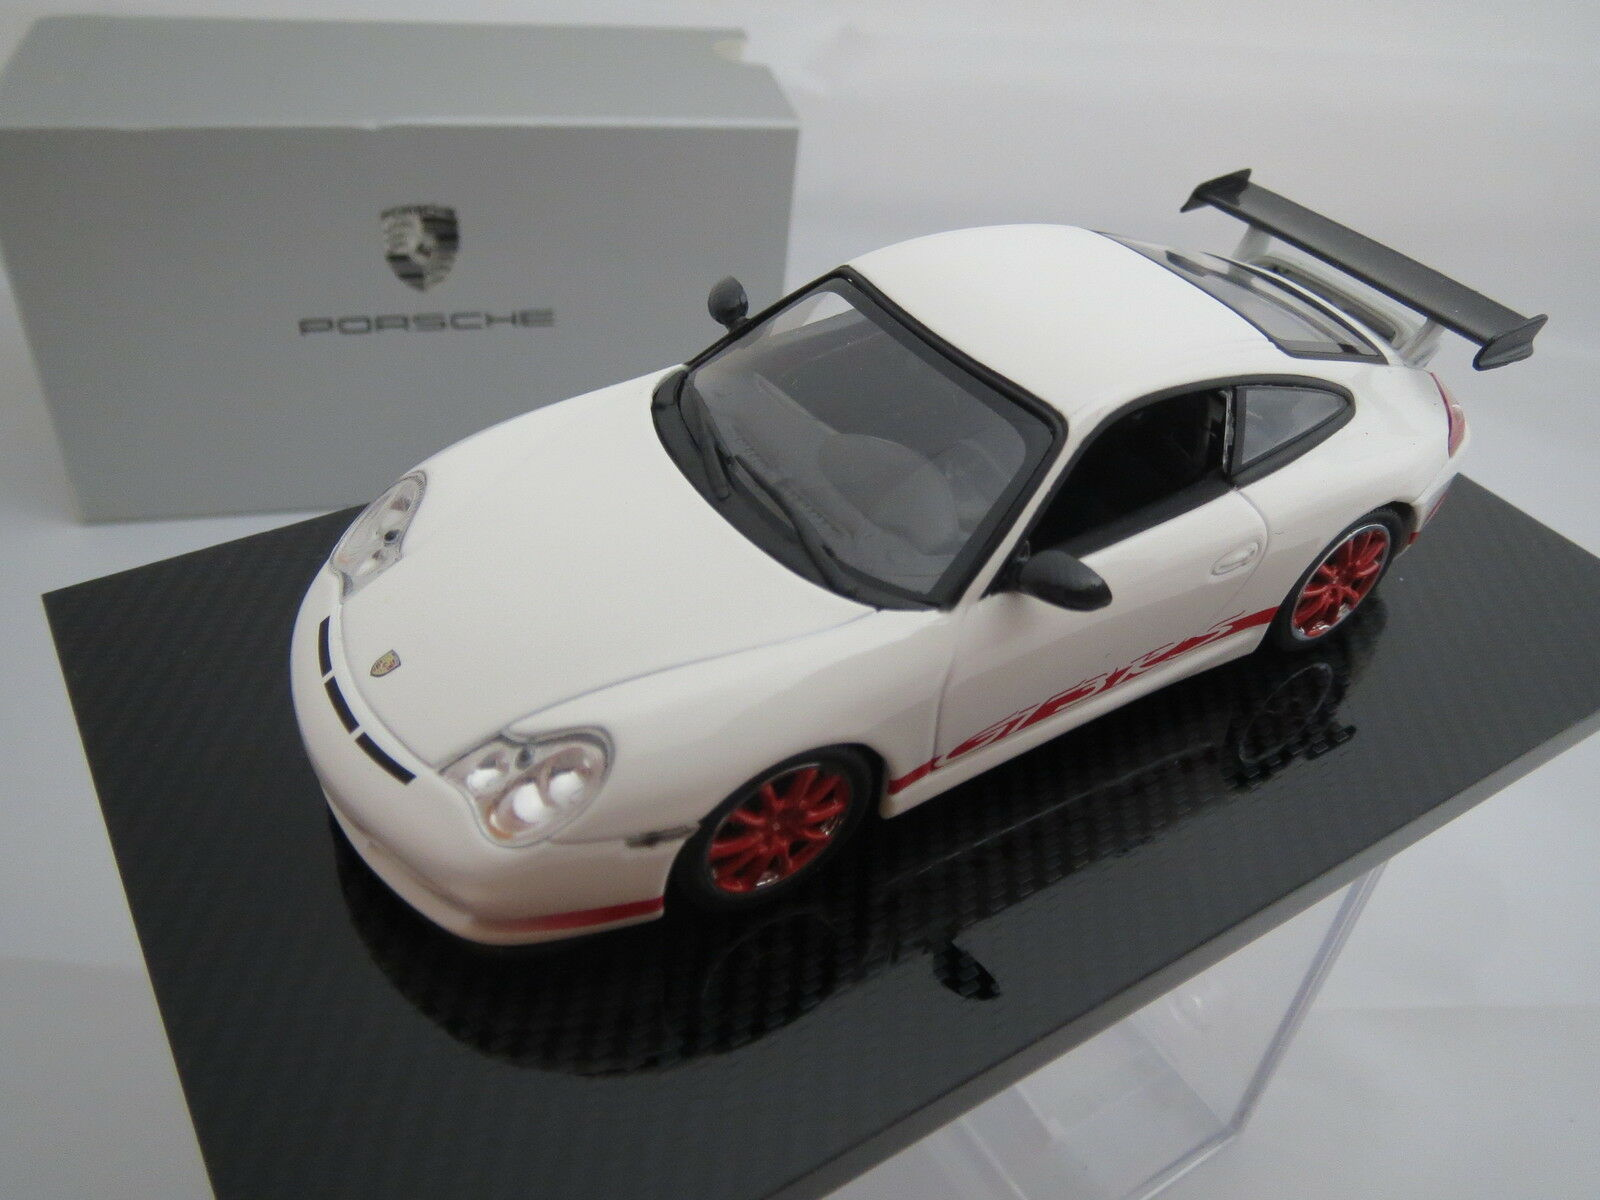 Minichamps Porsche 911 gt3 RS Dealer  Model on perspex plate, 1 43, Top  10 jours de retour